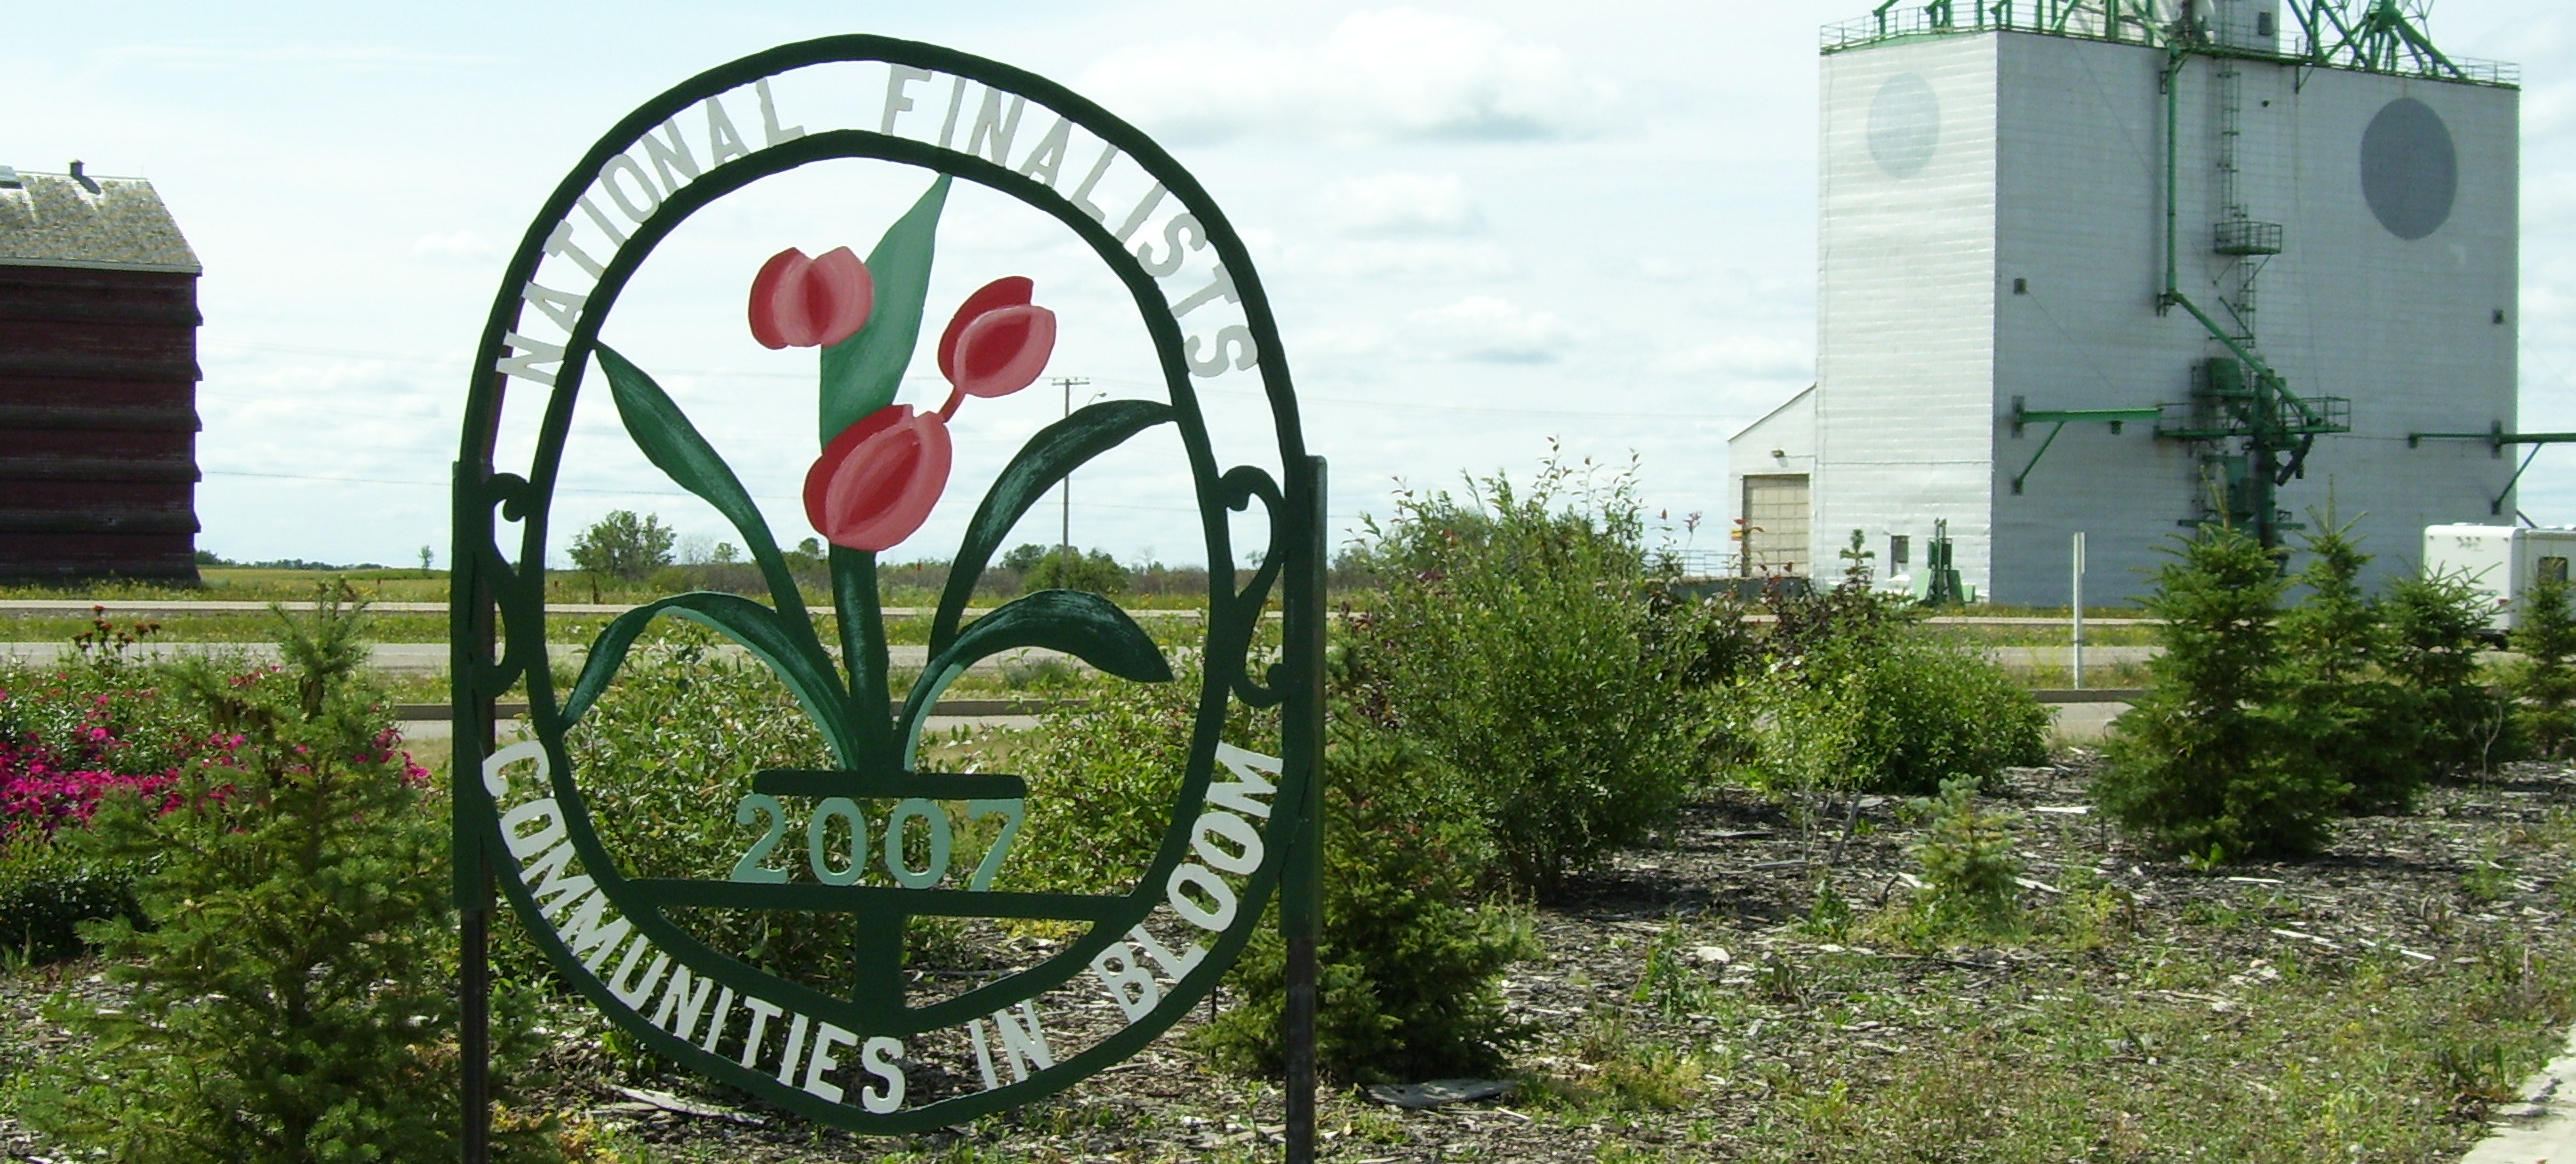 CommunitiesInBloom-Cropped